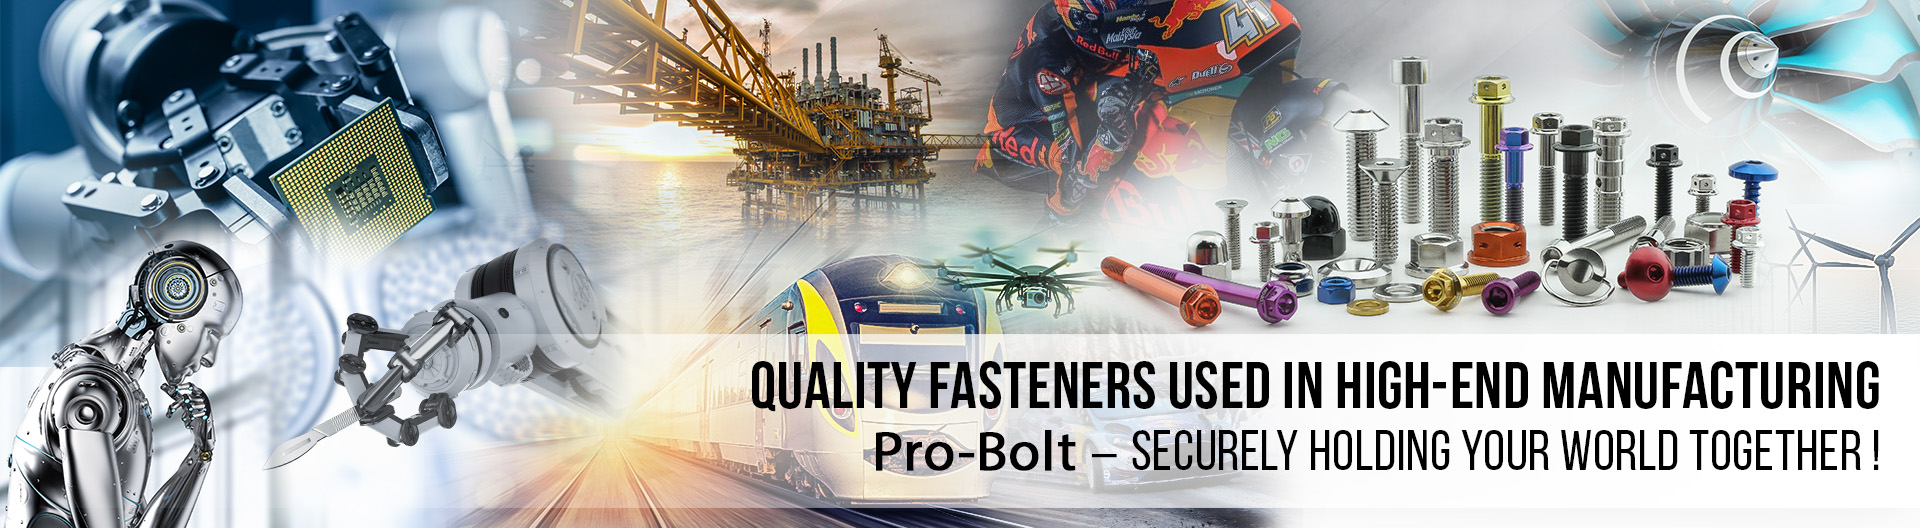 Quality fasteners used in High End Manufacturing